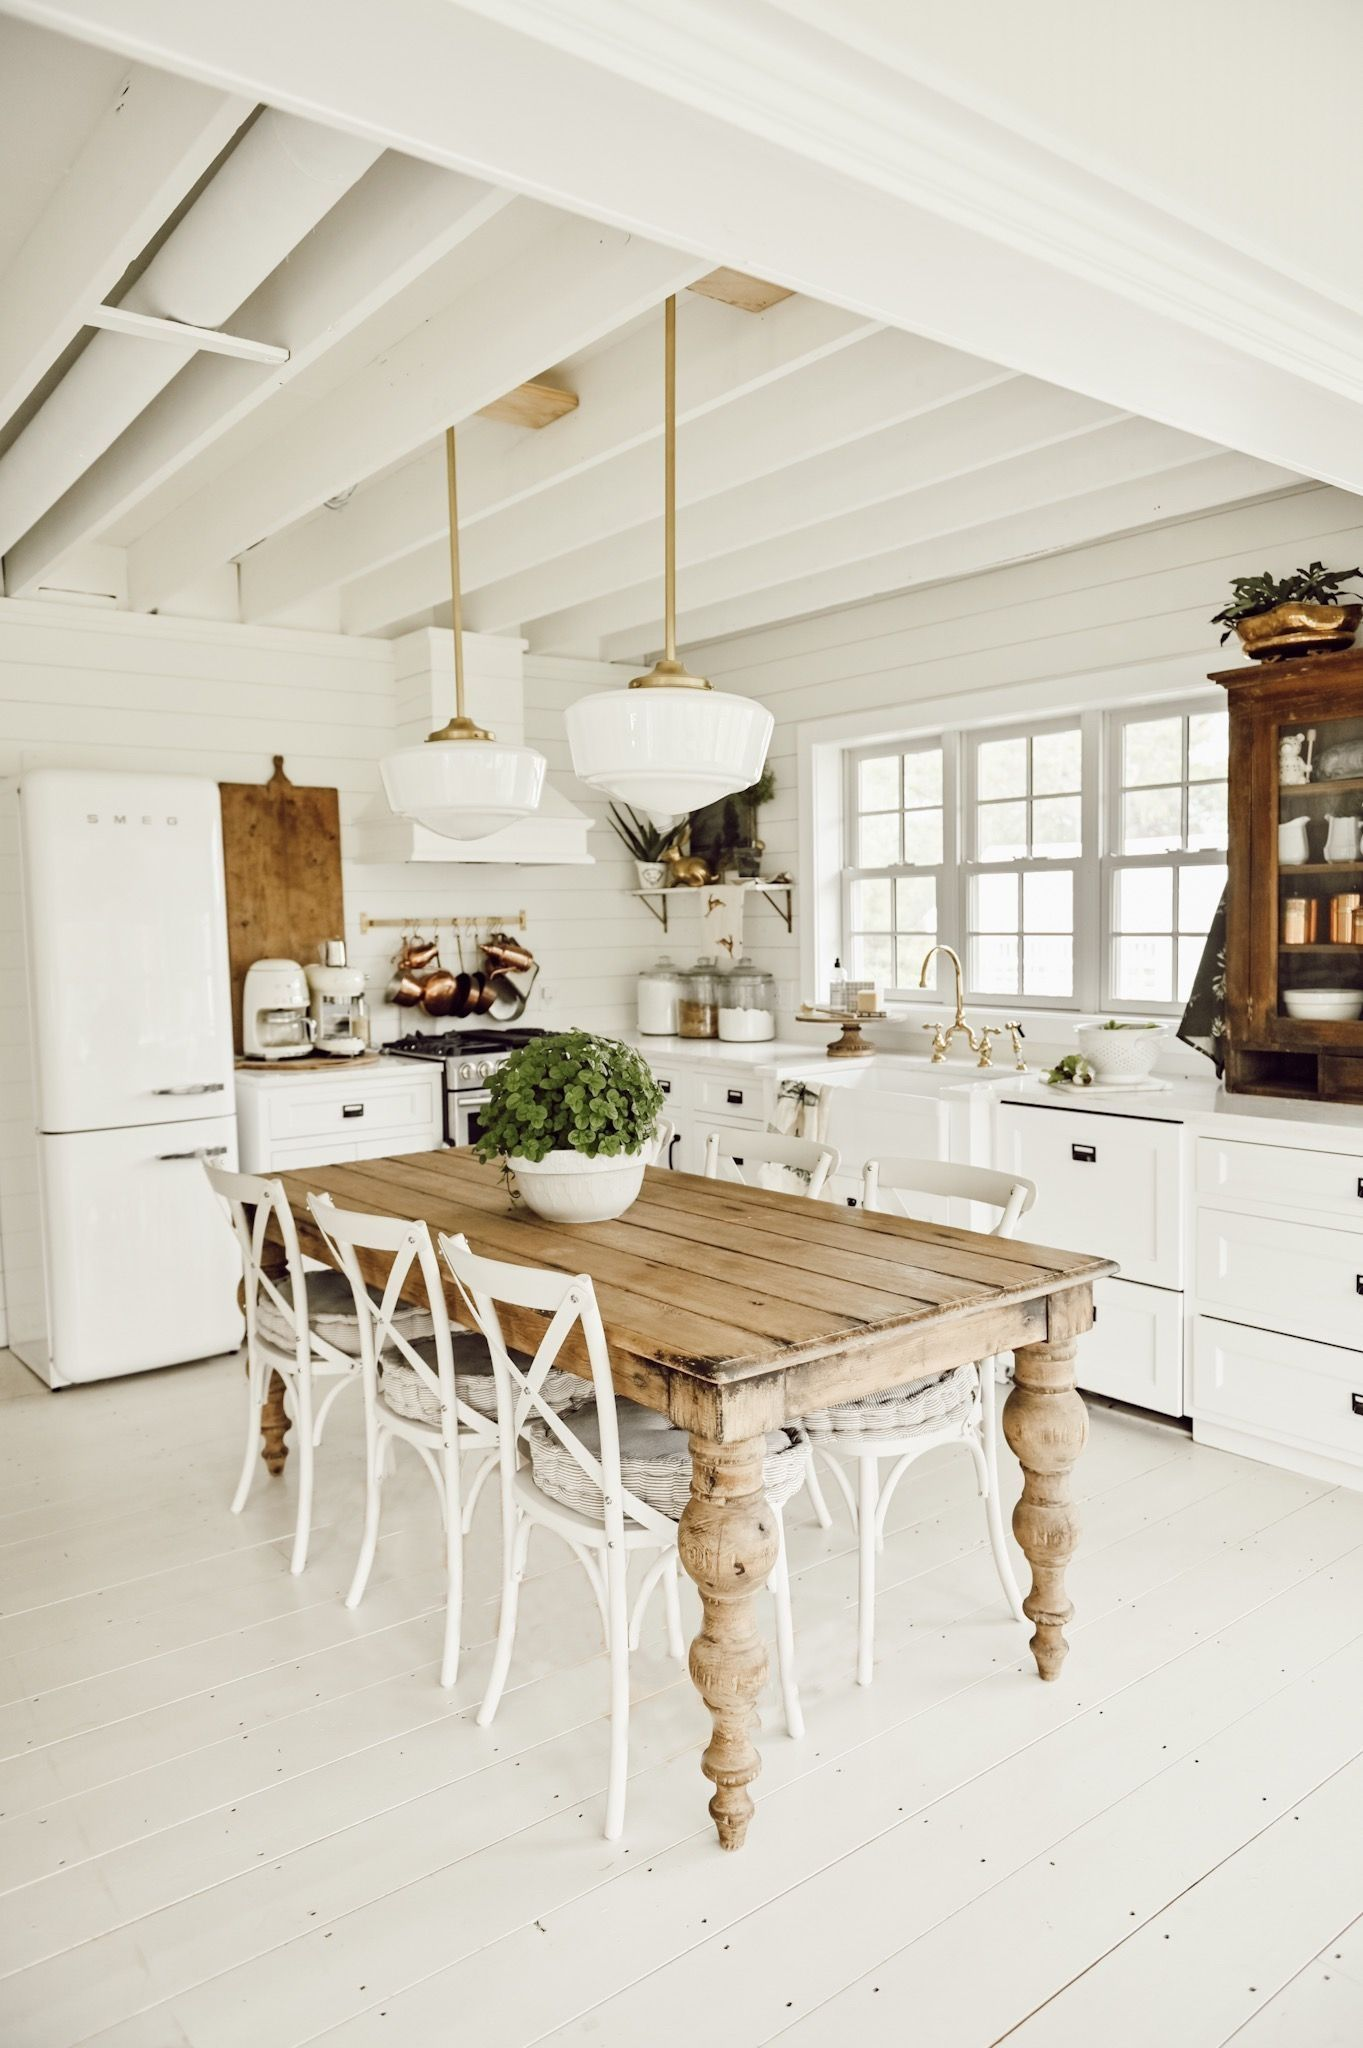 30 Charming Farmhouse Dining Room Table Design Ideas To Try In 2020 Dining Table In Kitchen Farmhouse Dining Room Table Farmhouse Dining